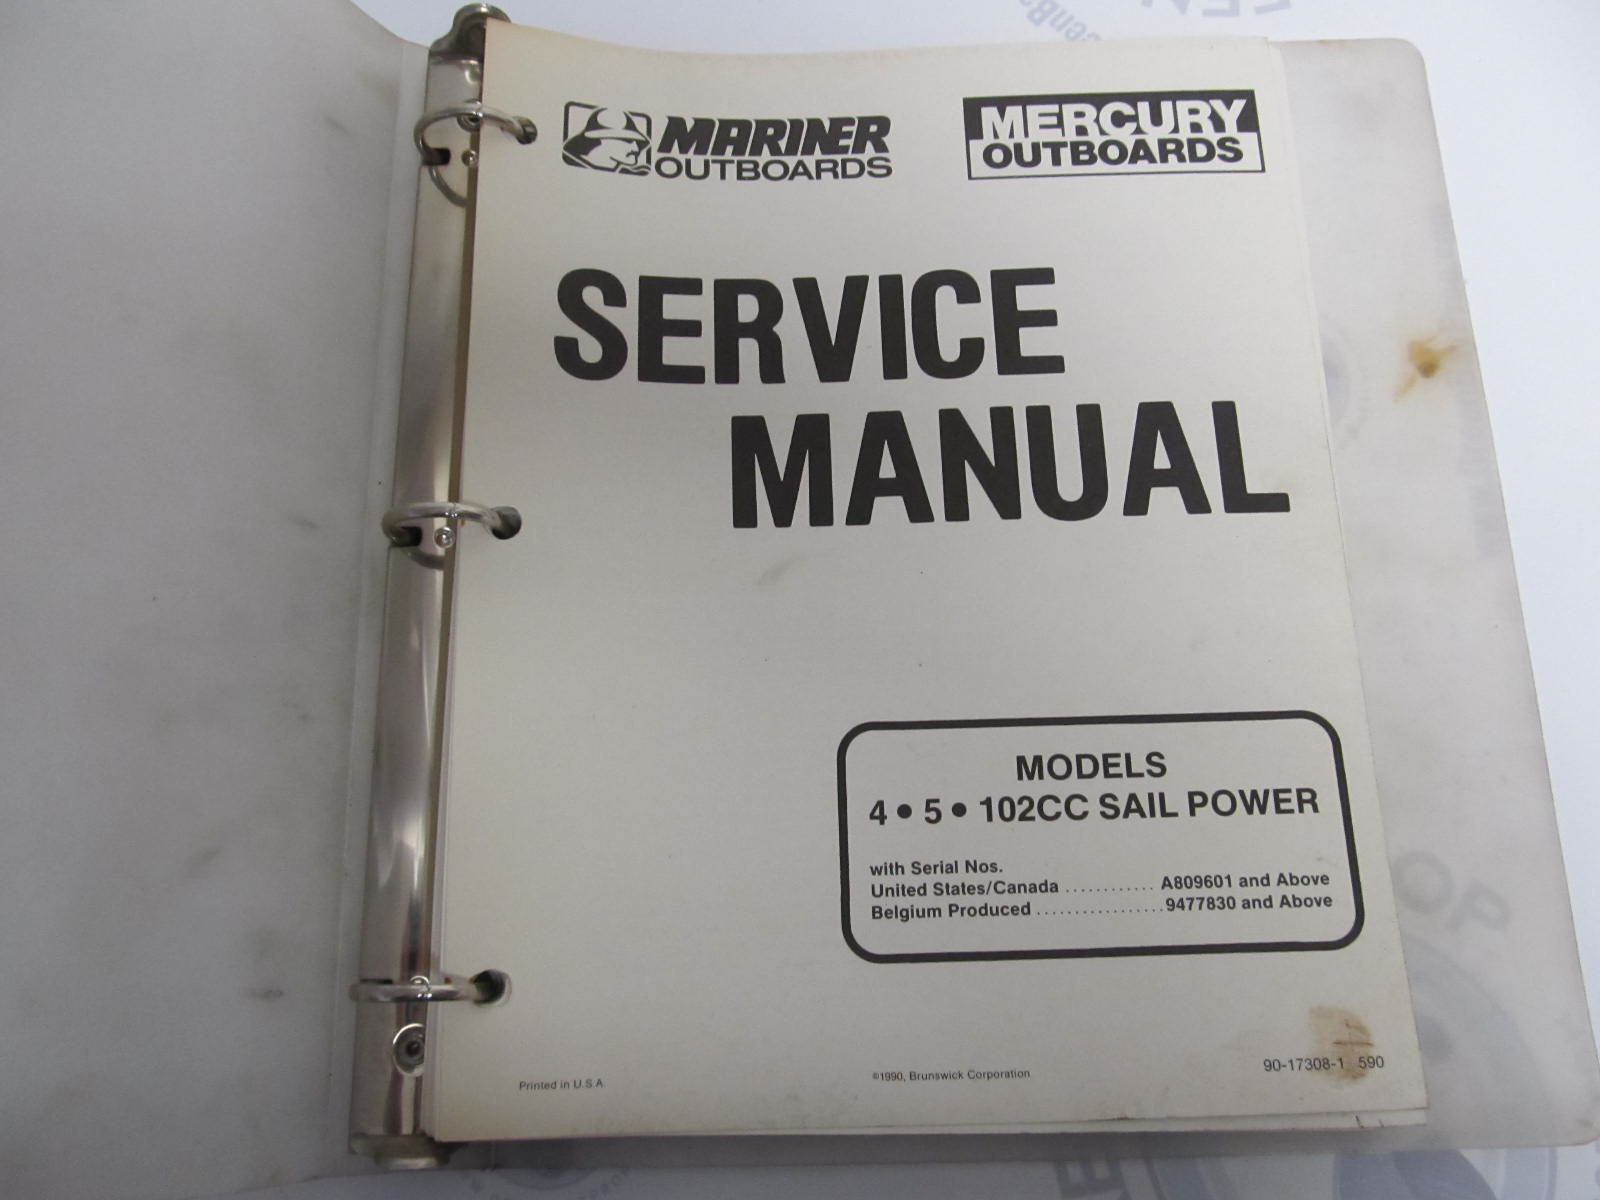 mariner outboard serial number guide pigikin Mariner Outboard Motor Repair mariner outboard serial number guide